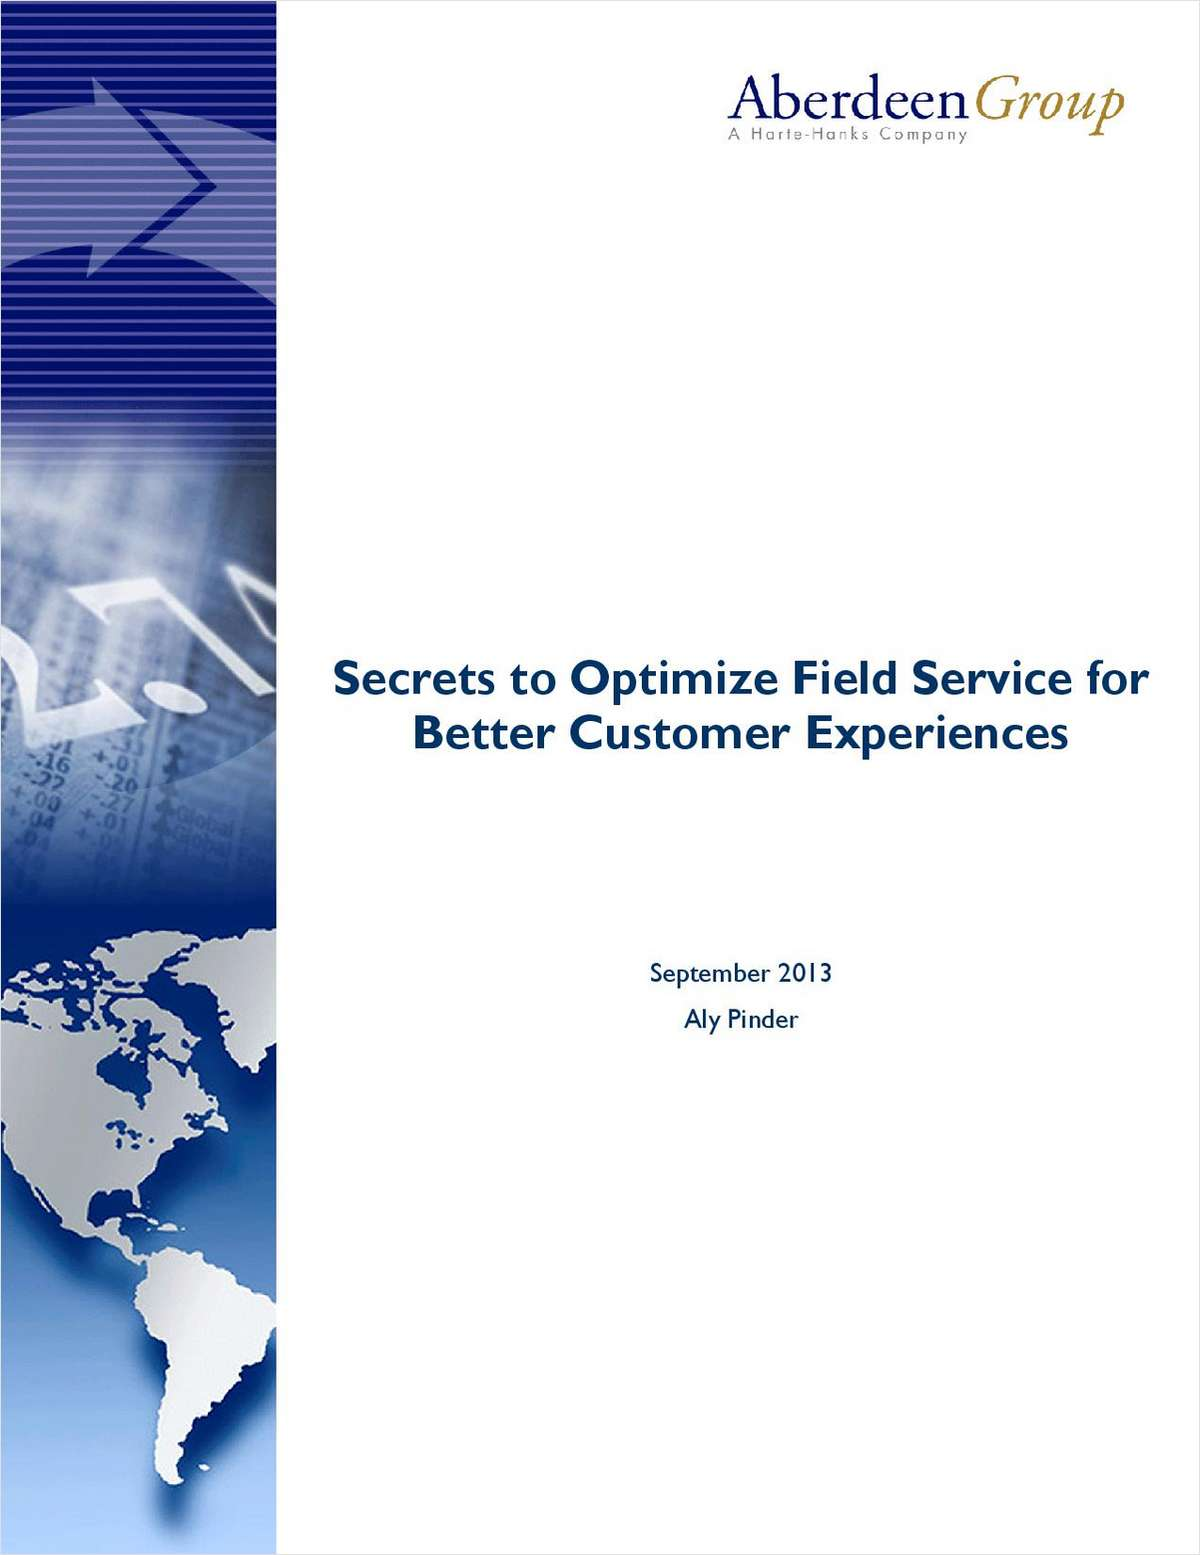 Secrets to Optimize Field Service for Better Customer Experiences